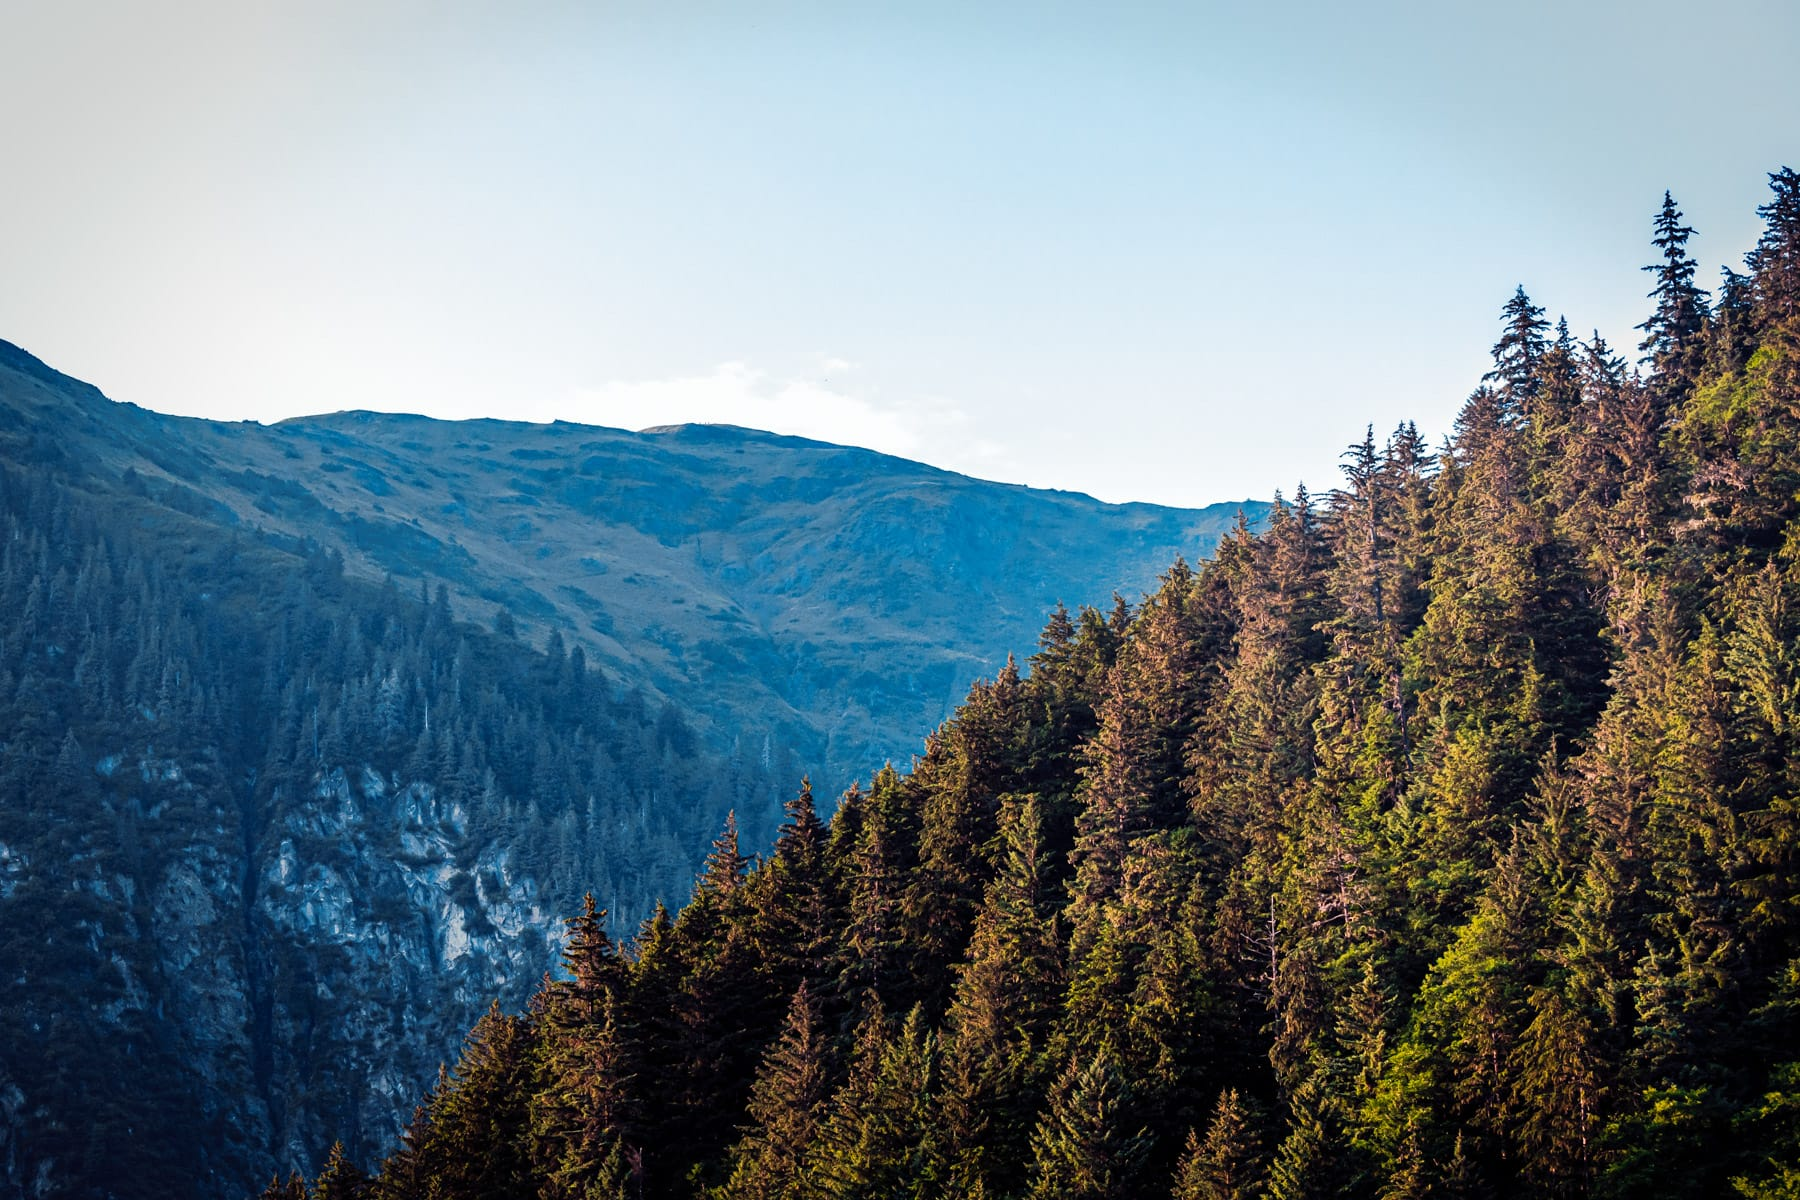 Pine trees grow in the wilderness forested mountains near Juneau, Alaska.